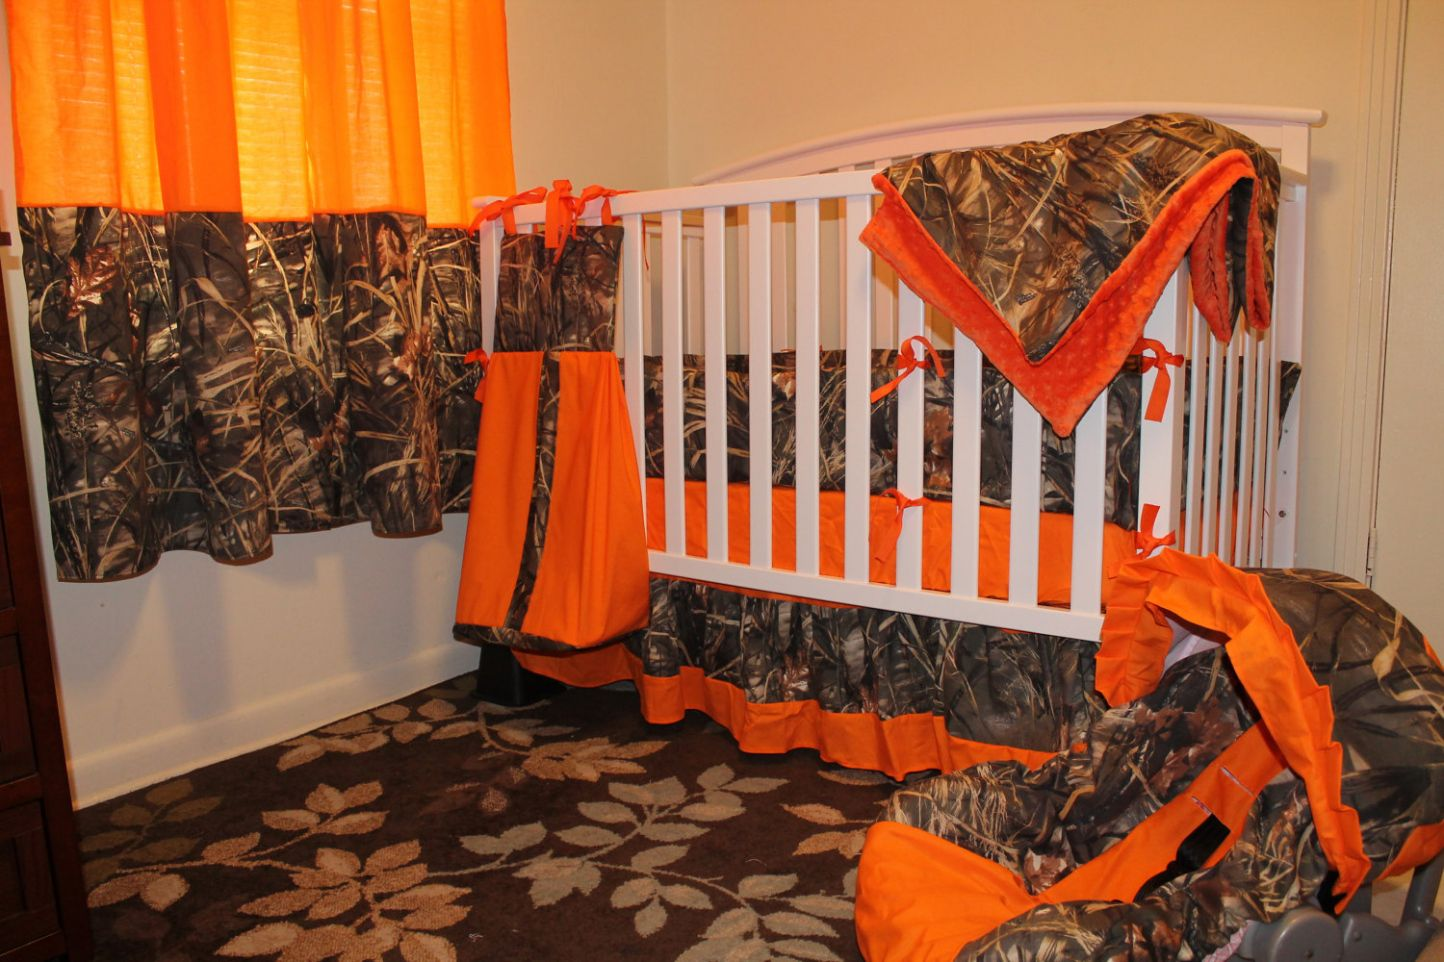 Camo Baby Room Themes Interior Paint Color Ideas Check More At Http Www Chulaniphotography Com Camo Baby Room Camo Baby Stuff Camouflage Baby Baby Boy Camo